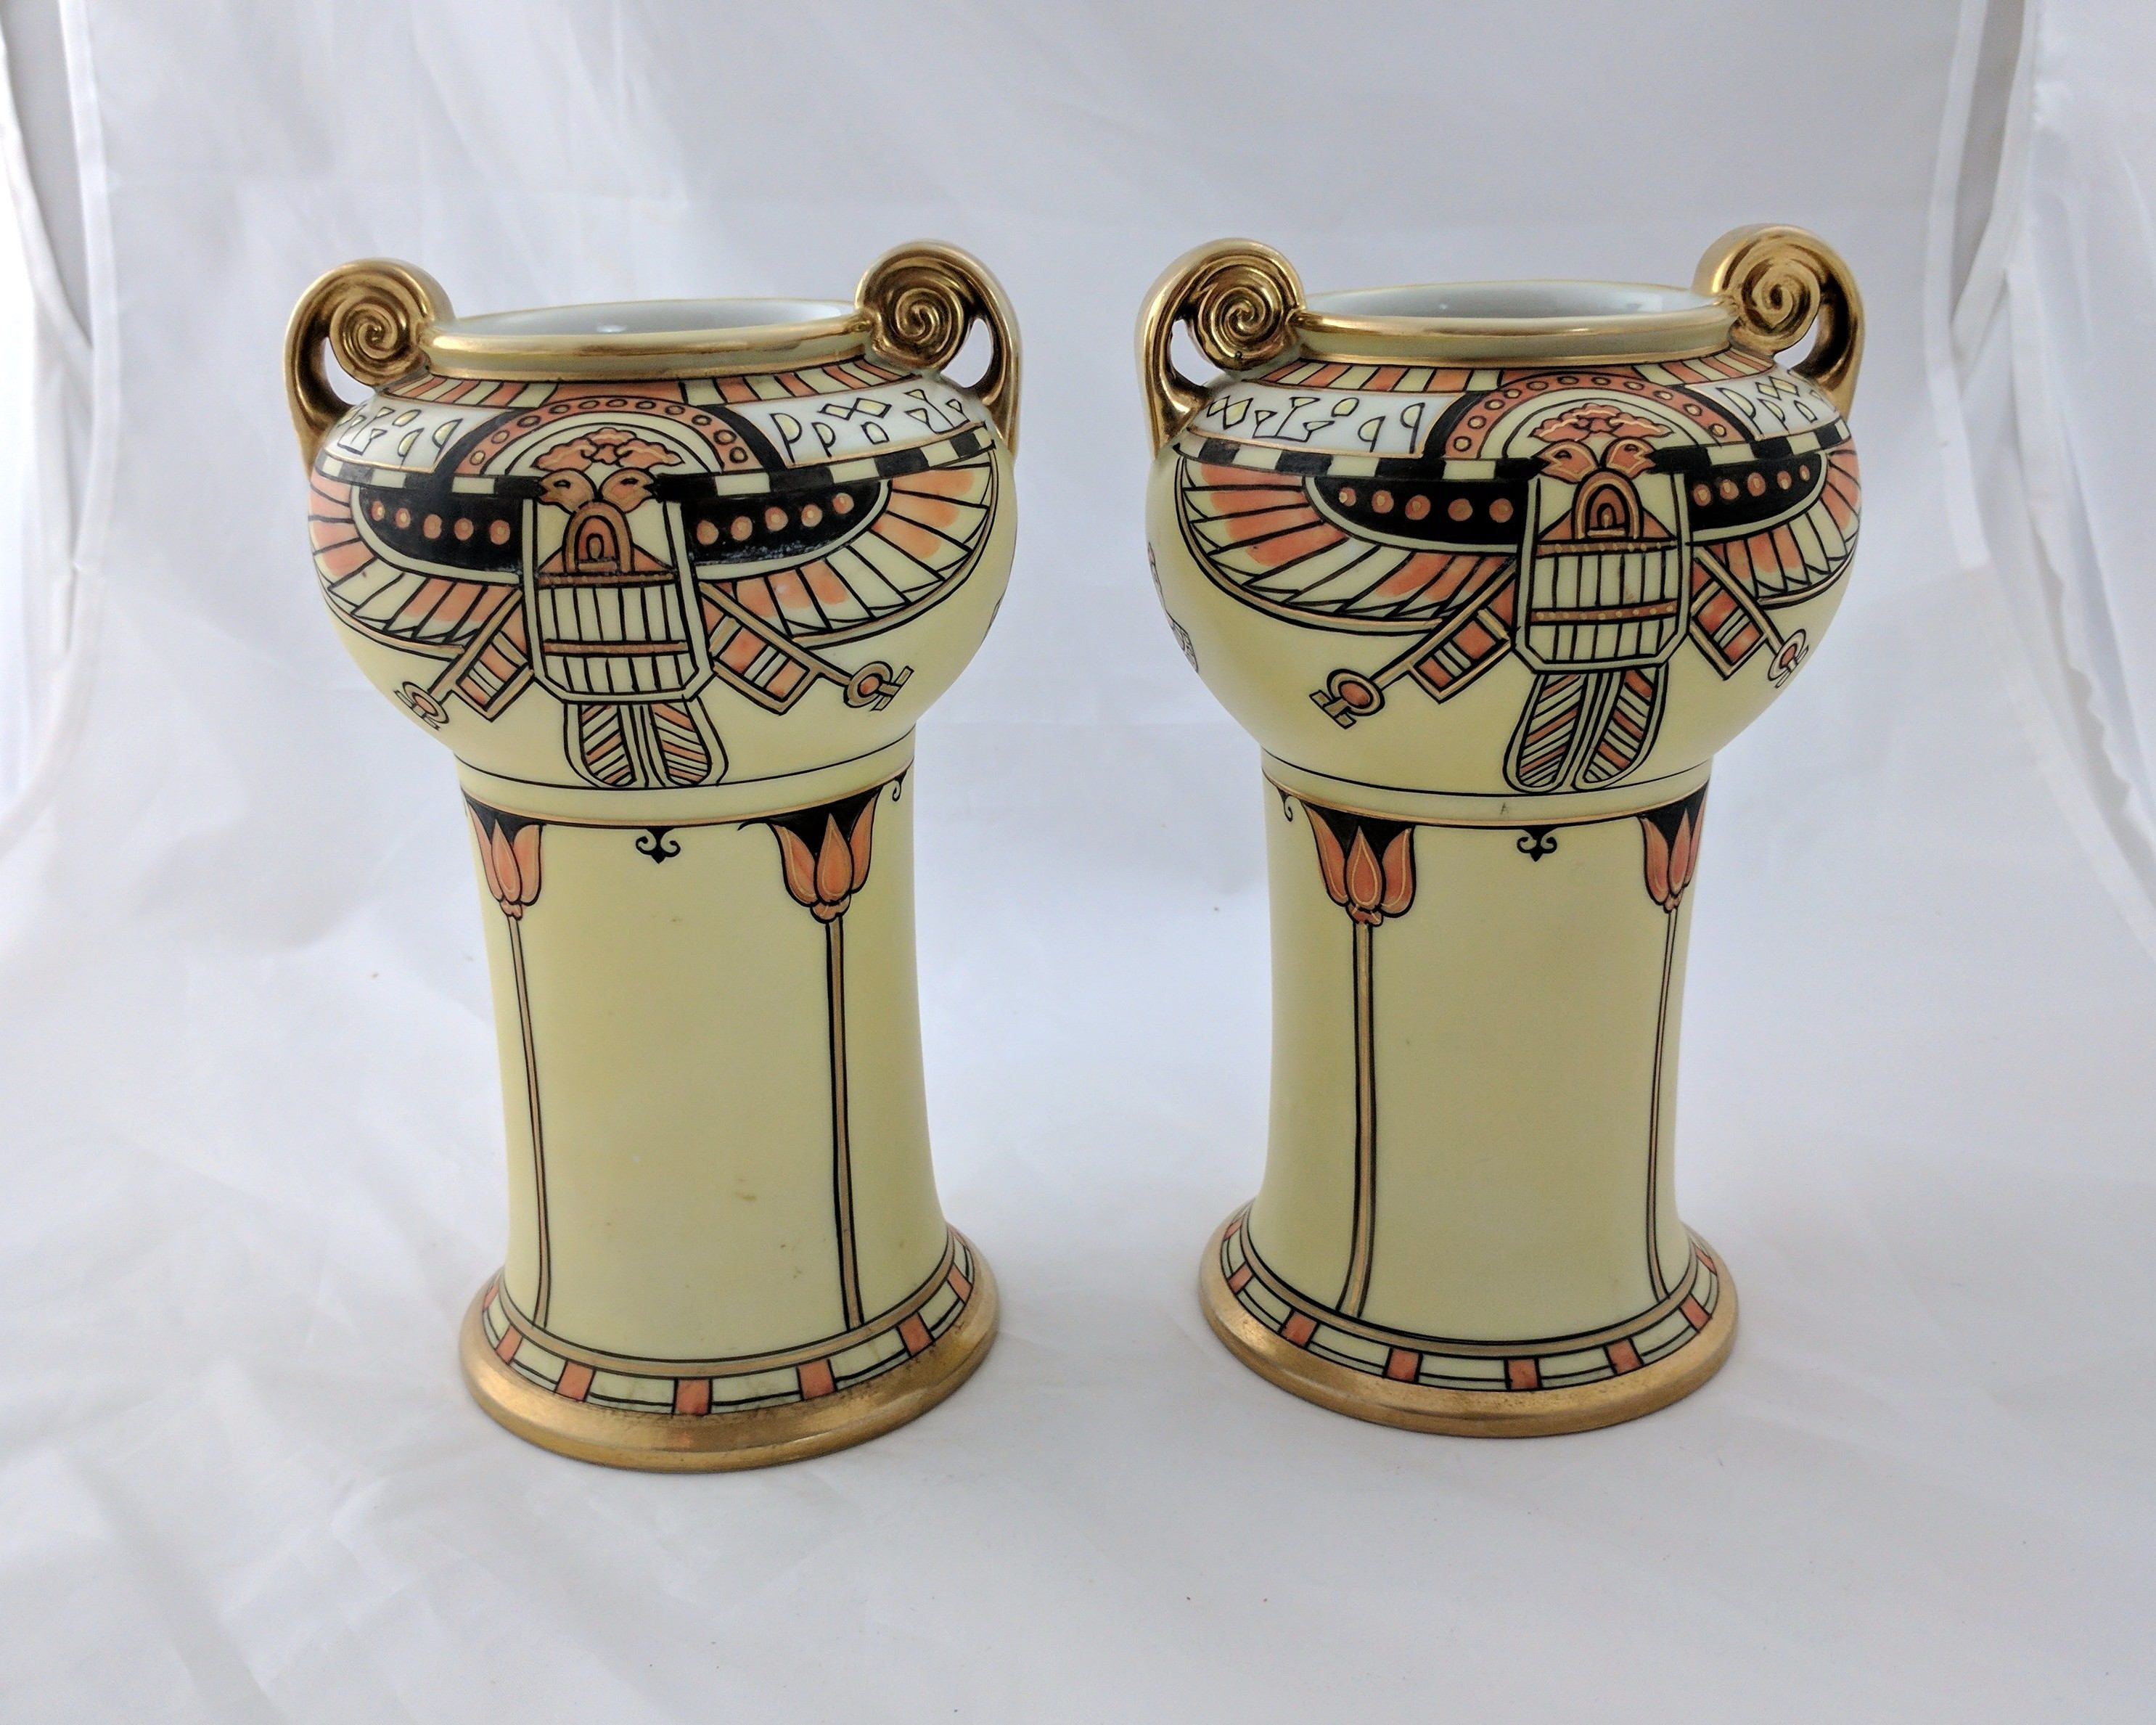 antique nippon vases of pair antique nippon egyptian revival porcelain vases hand painted regarding pair antique nippon egyptian revival porcelain vases hand painted 1911 21 by tlgvintageart